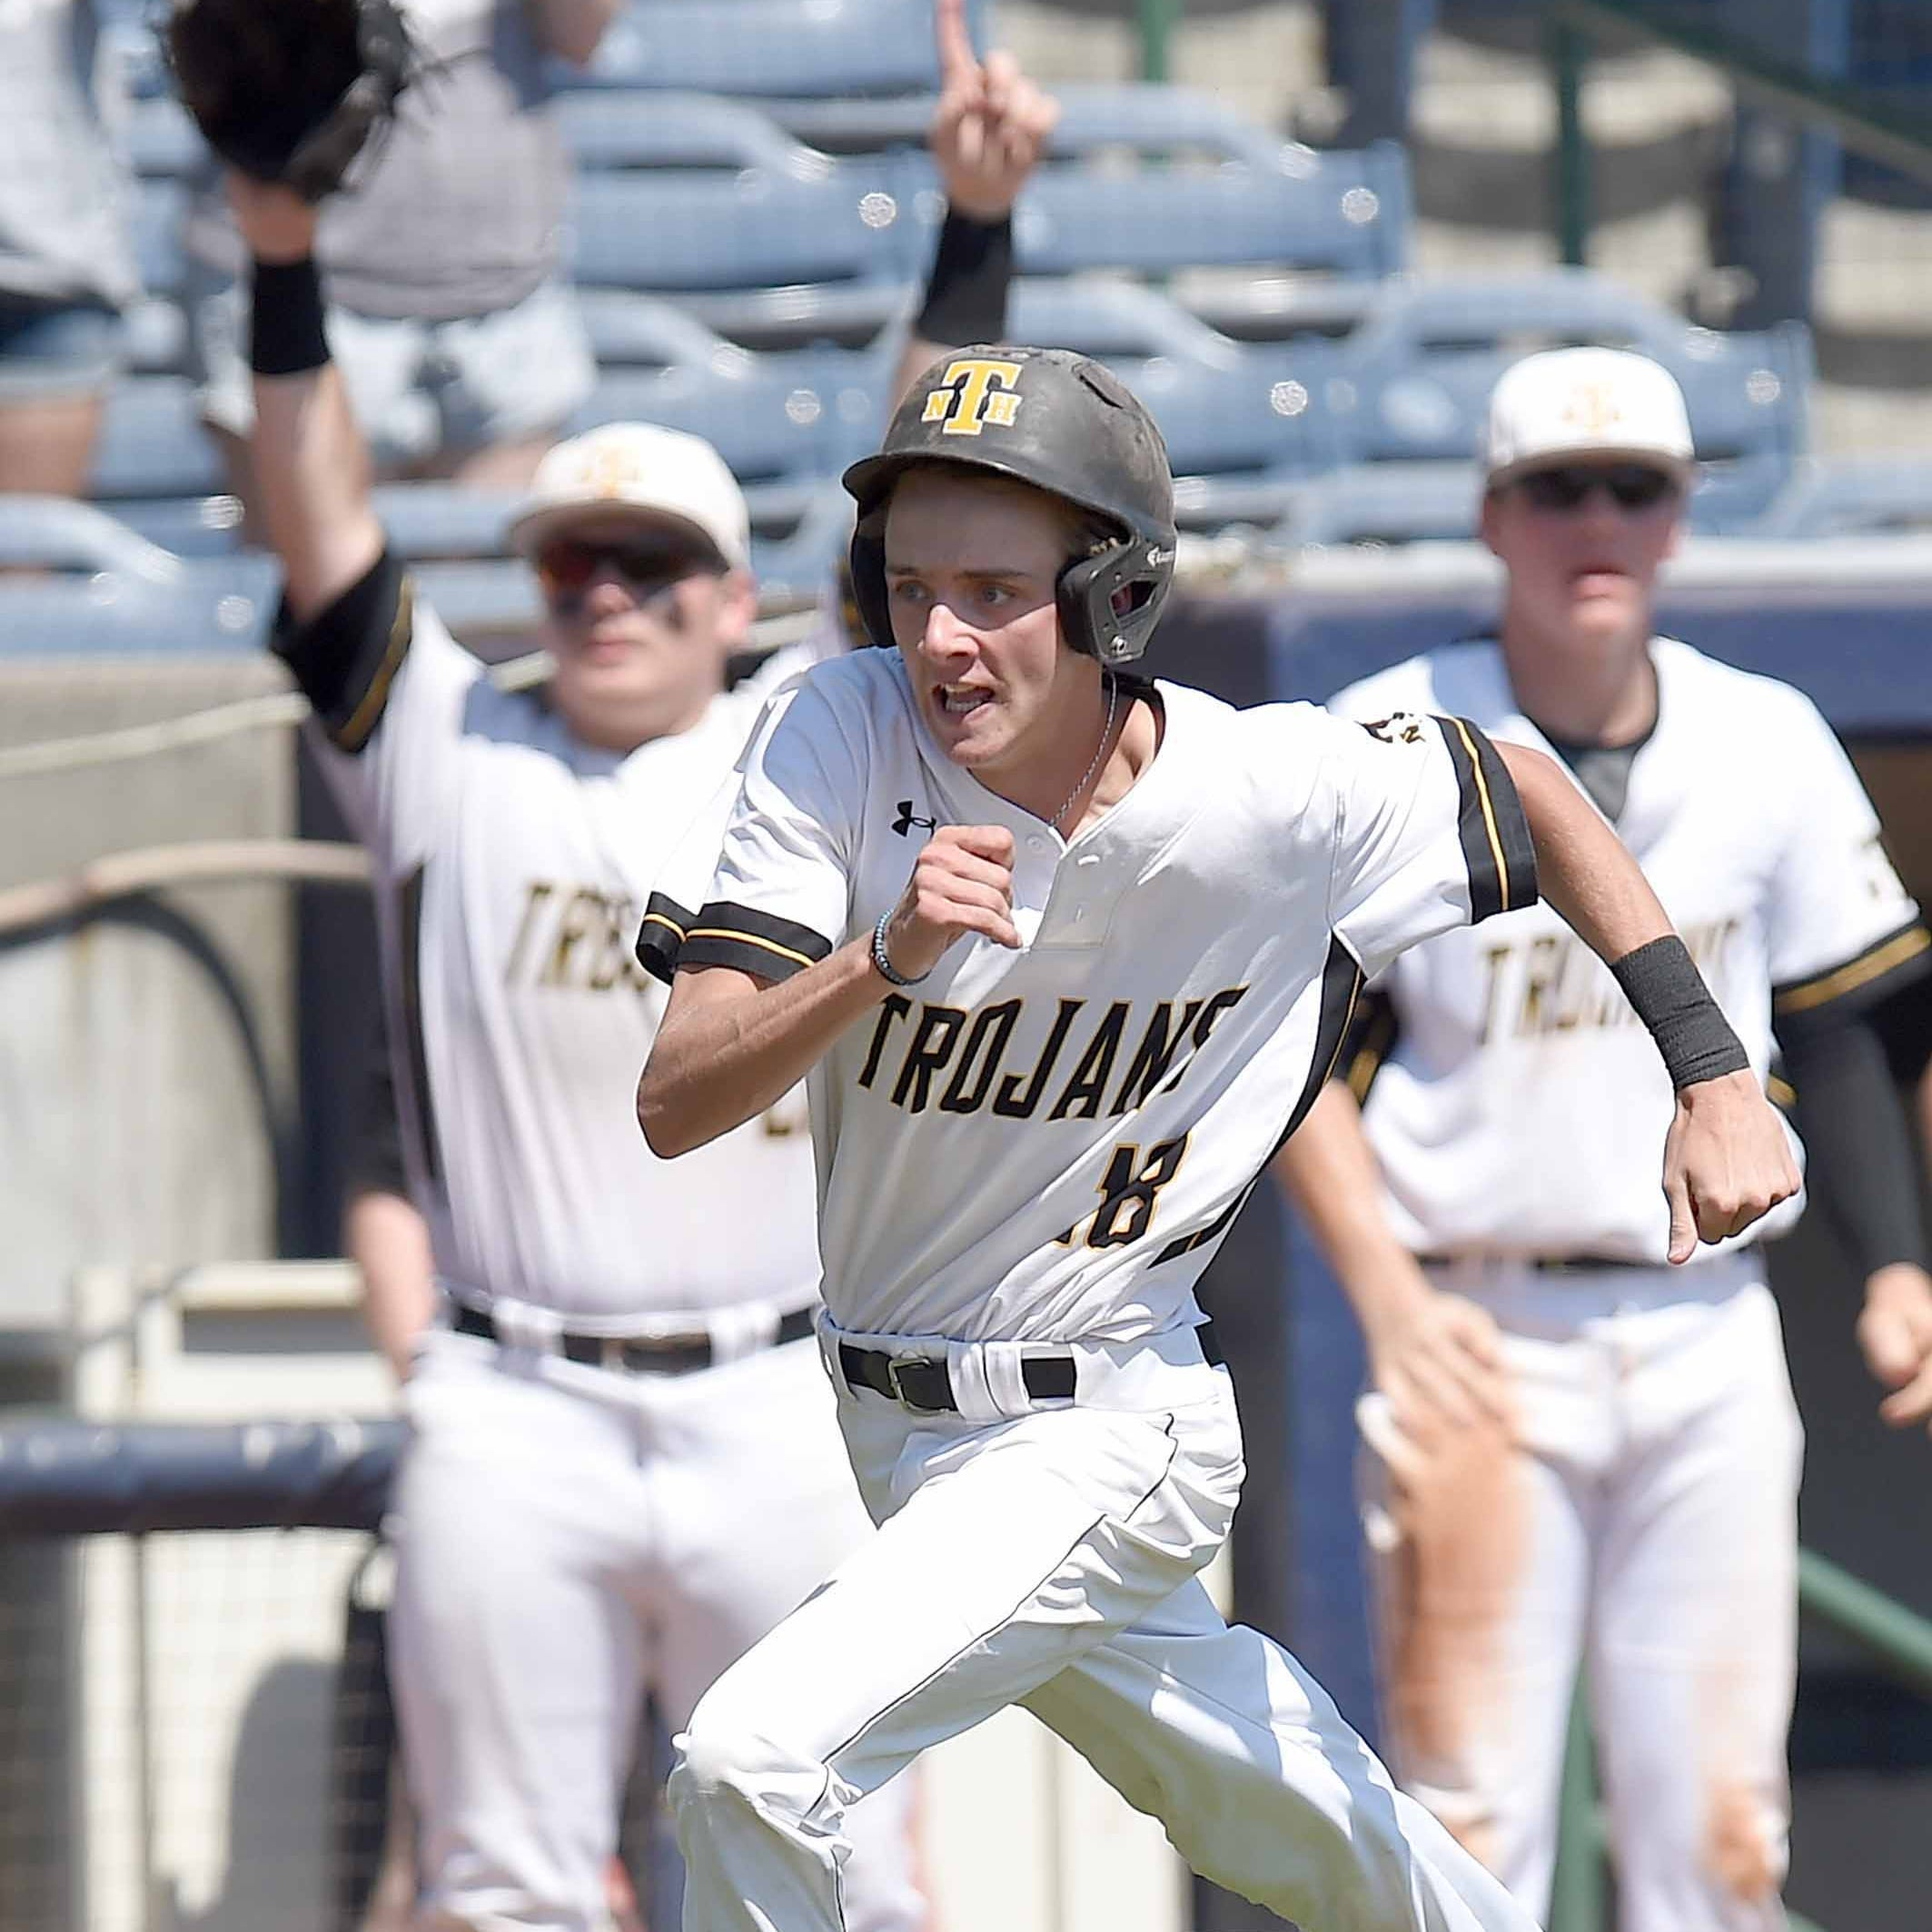 New Hope's Landon Sanderson (18) heads for home against Sumrall in the MHSAA State Baseball Championships on Thursday, May 16, 2019, at Trustmark Park in Pearl, Miss.